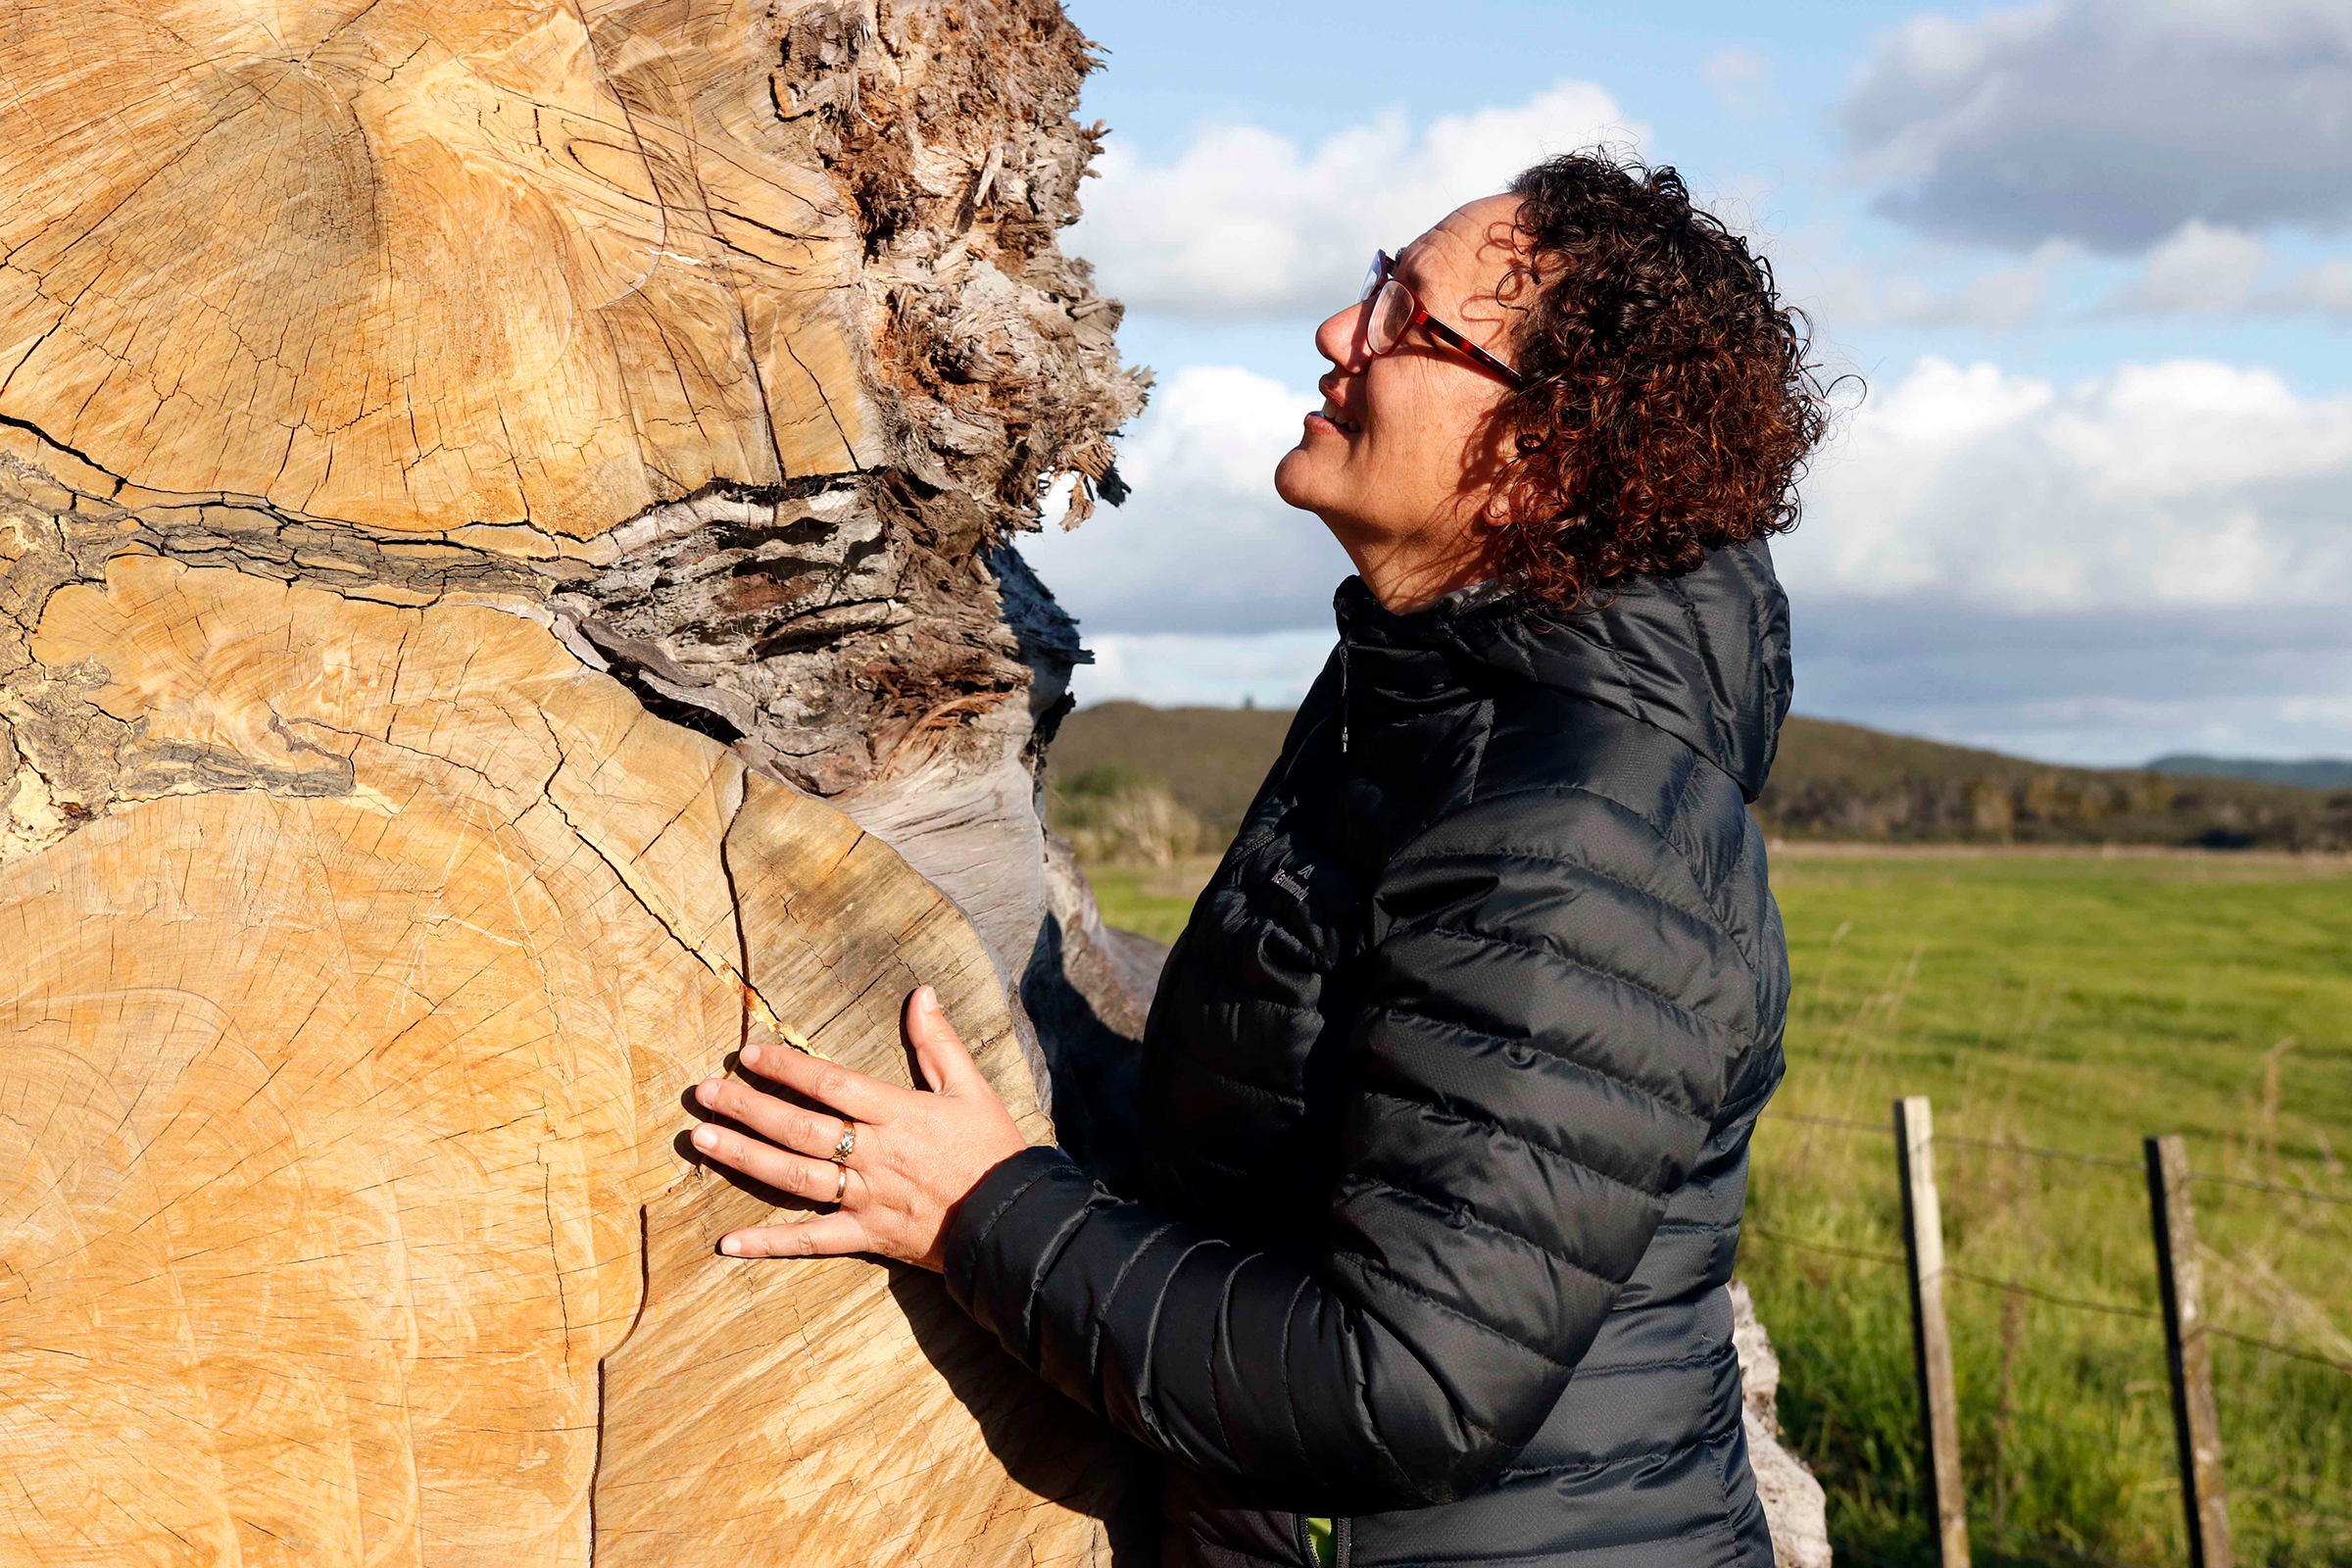 Donna Tukariri sees herself as a kaitiaki, or guardian, of the ancient kauri log. Eventually, it will likely be divided up and shared among the wider Ngāpuhi tribe, to be used for cultural purposes like carving. Photograph by Kate Evans.